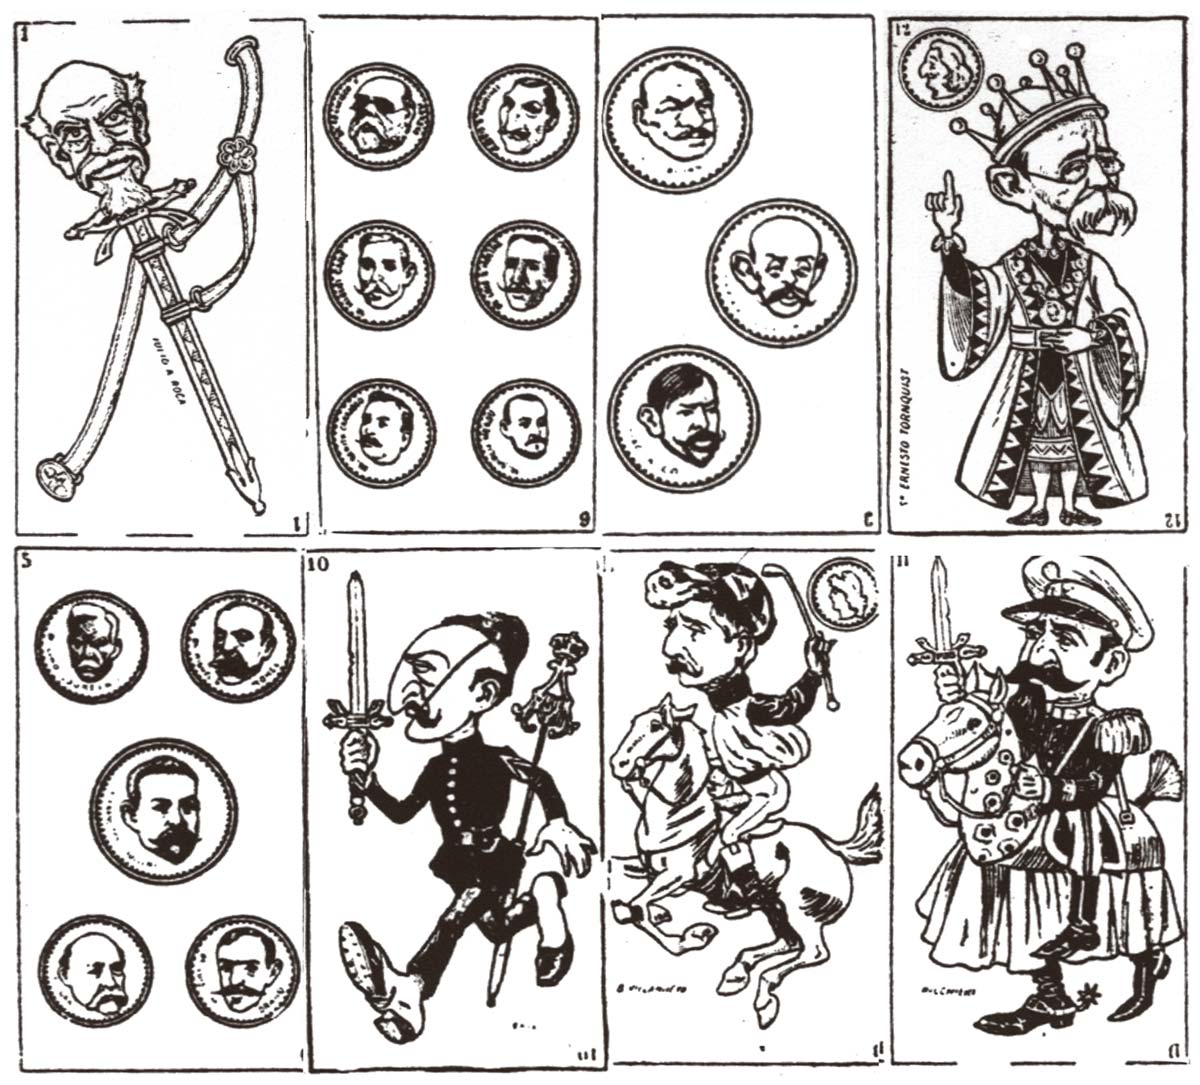 political caricatures pack published in Buenos Aires by Pérez in 1906